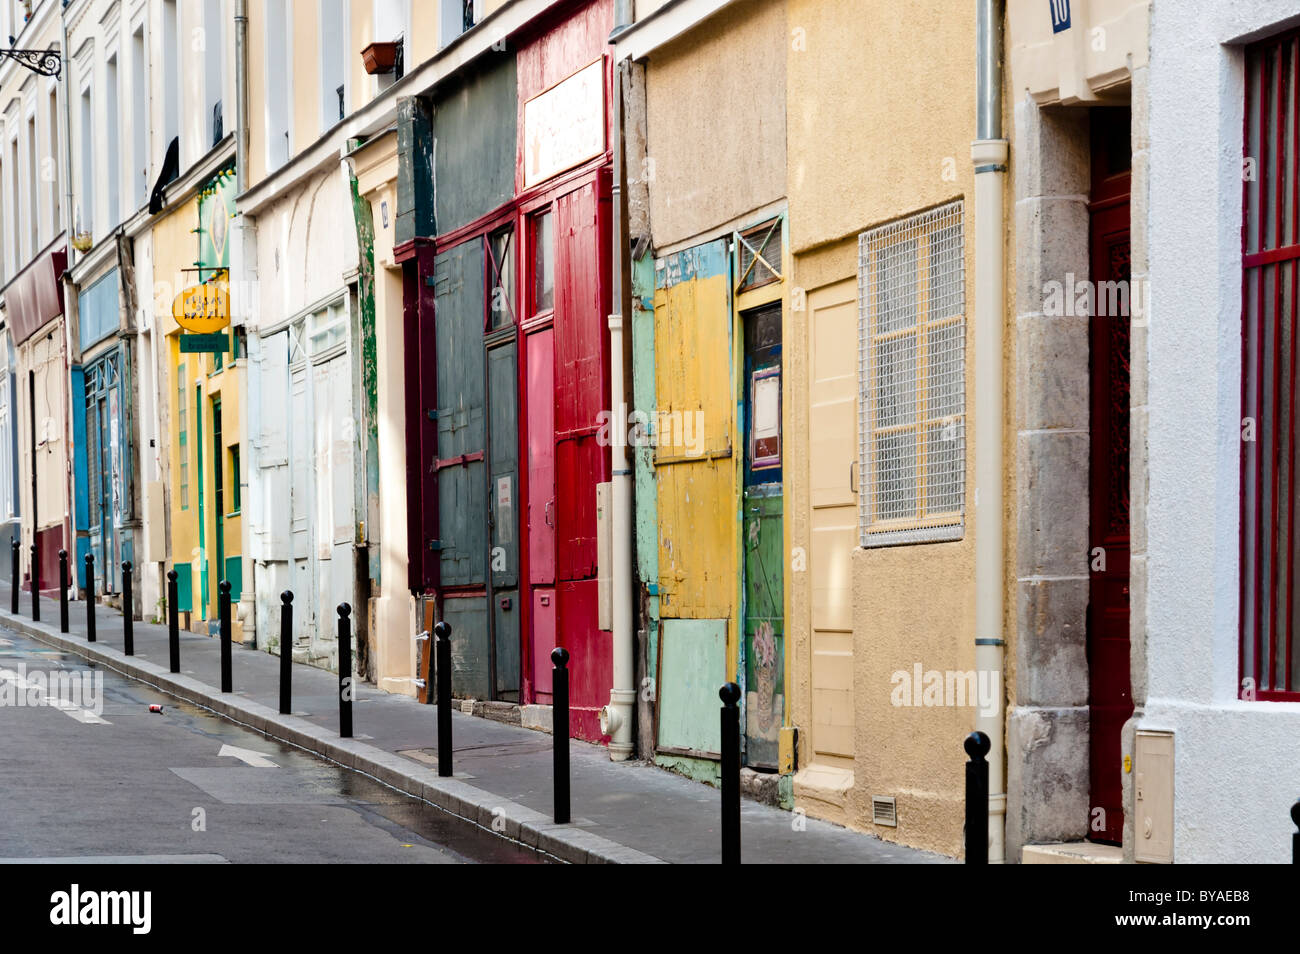 Closed Doors on a Sunday afternoon in the Rue Saint Martre, Paris - Stock Image